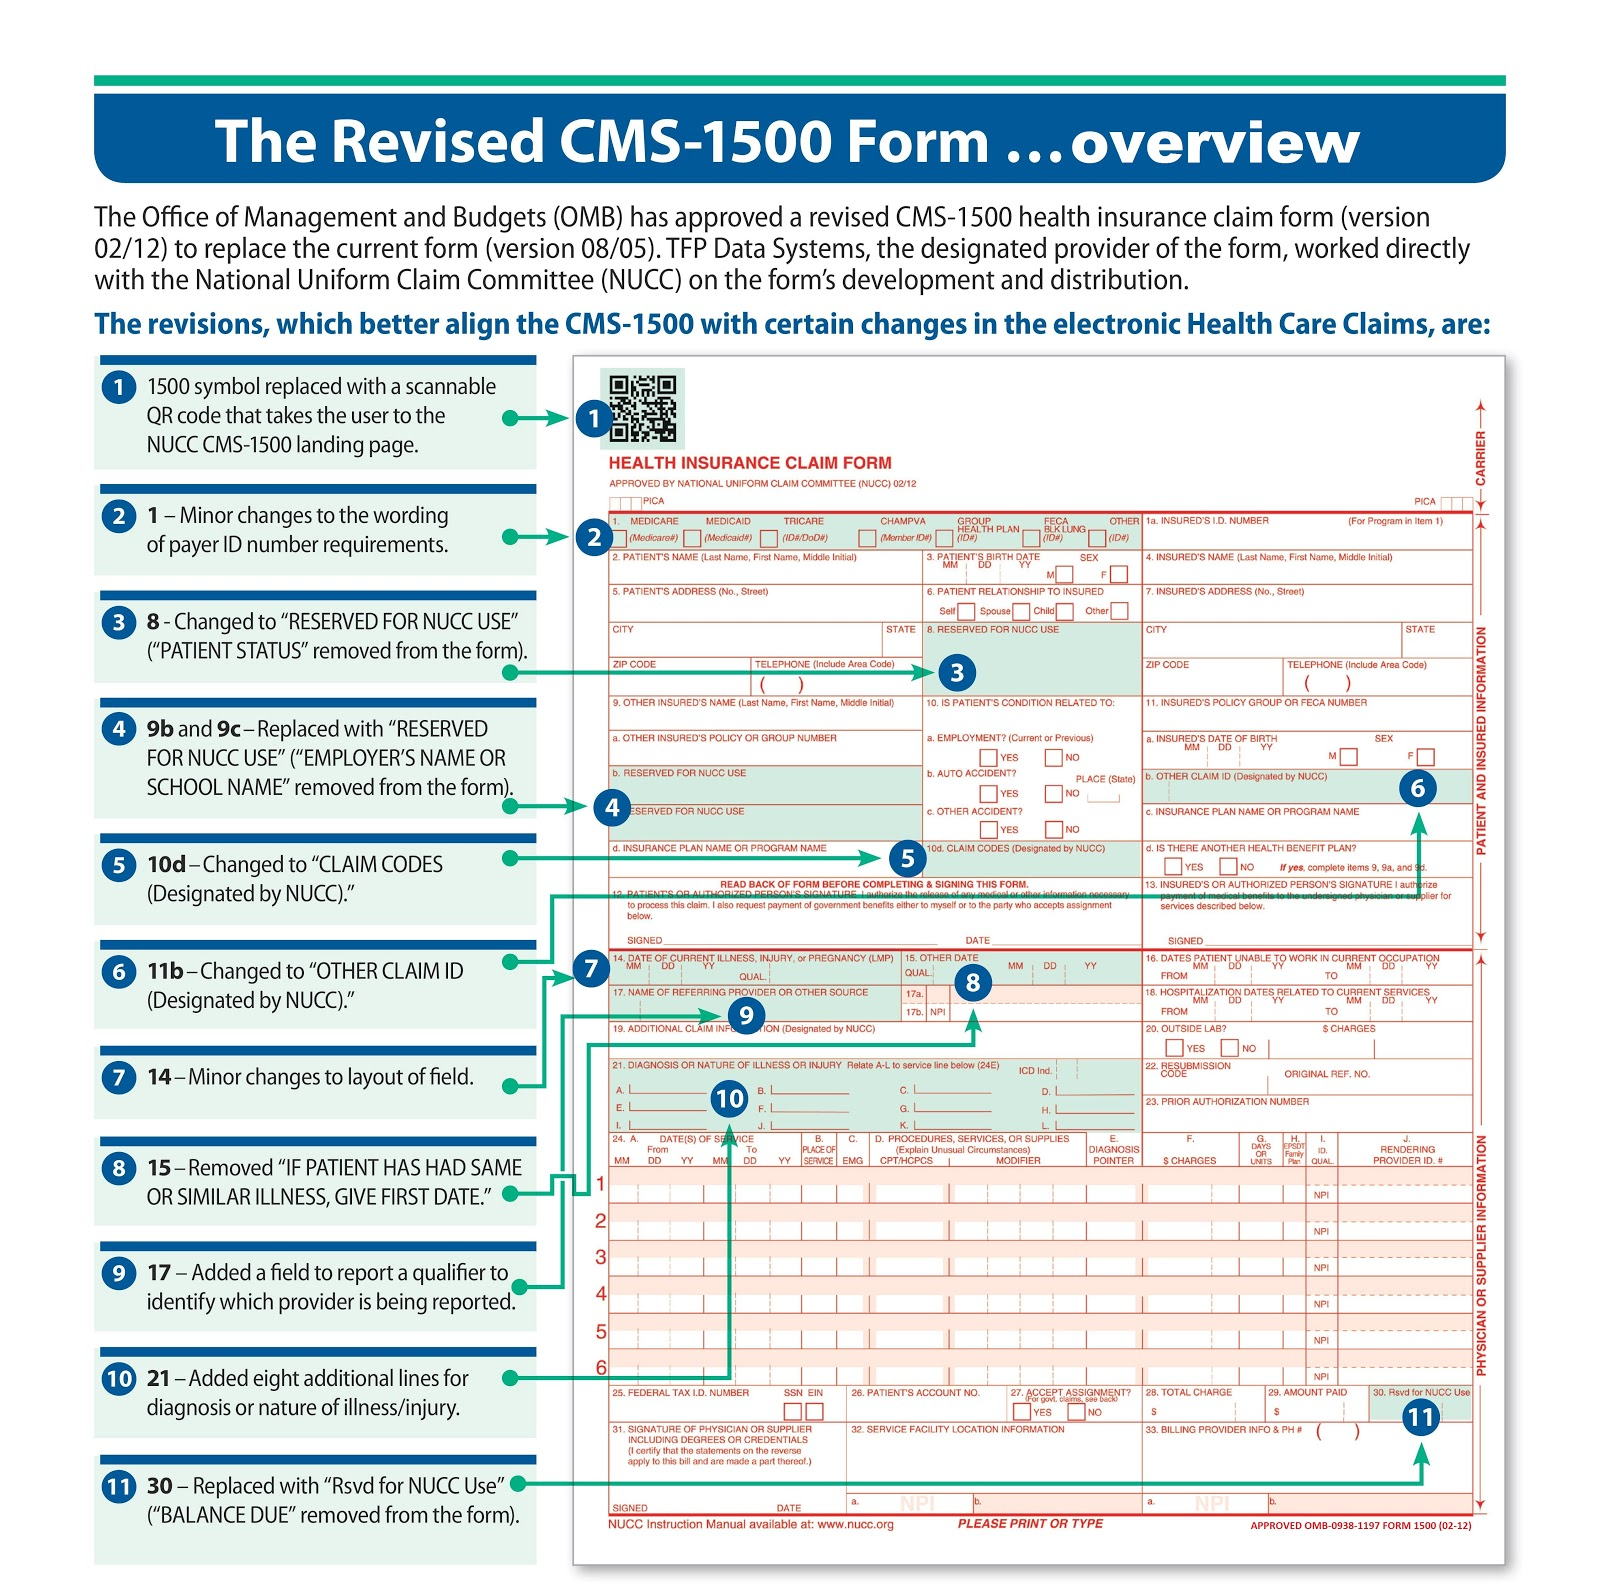 New HCFA form 2014 version 02/12 of CMS-1500 for ICD-10 | Medical ...